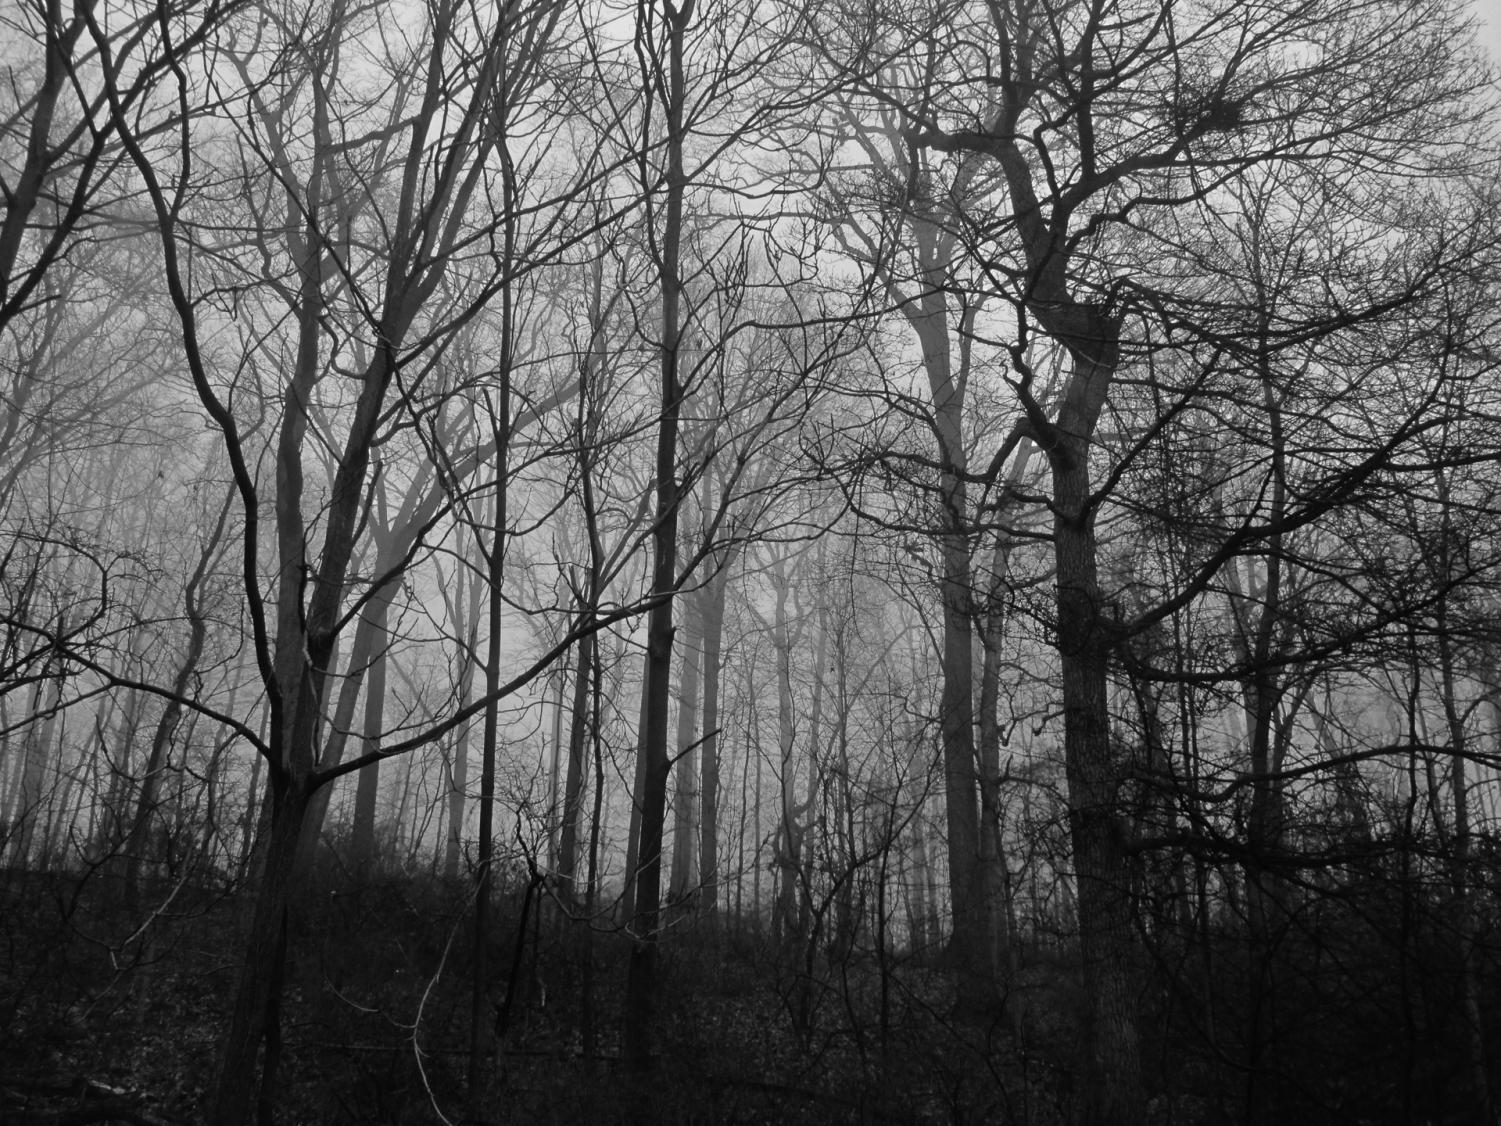 Public Domain Pictures - Scary Woods